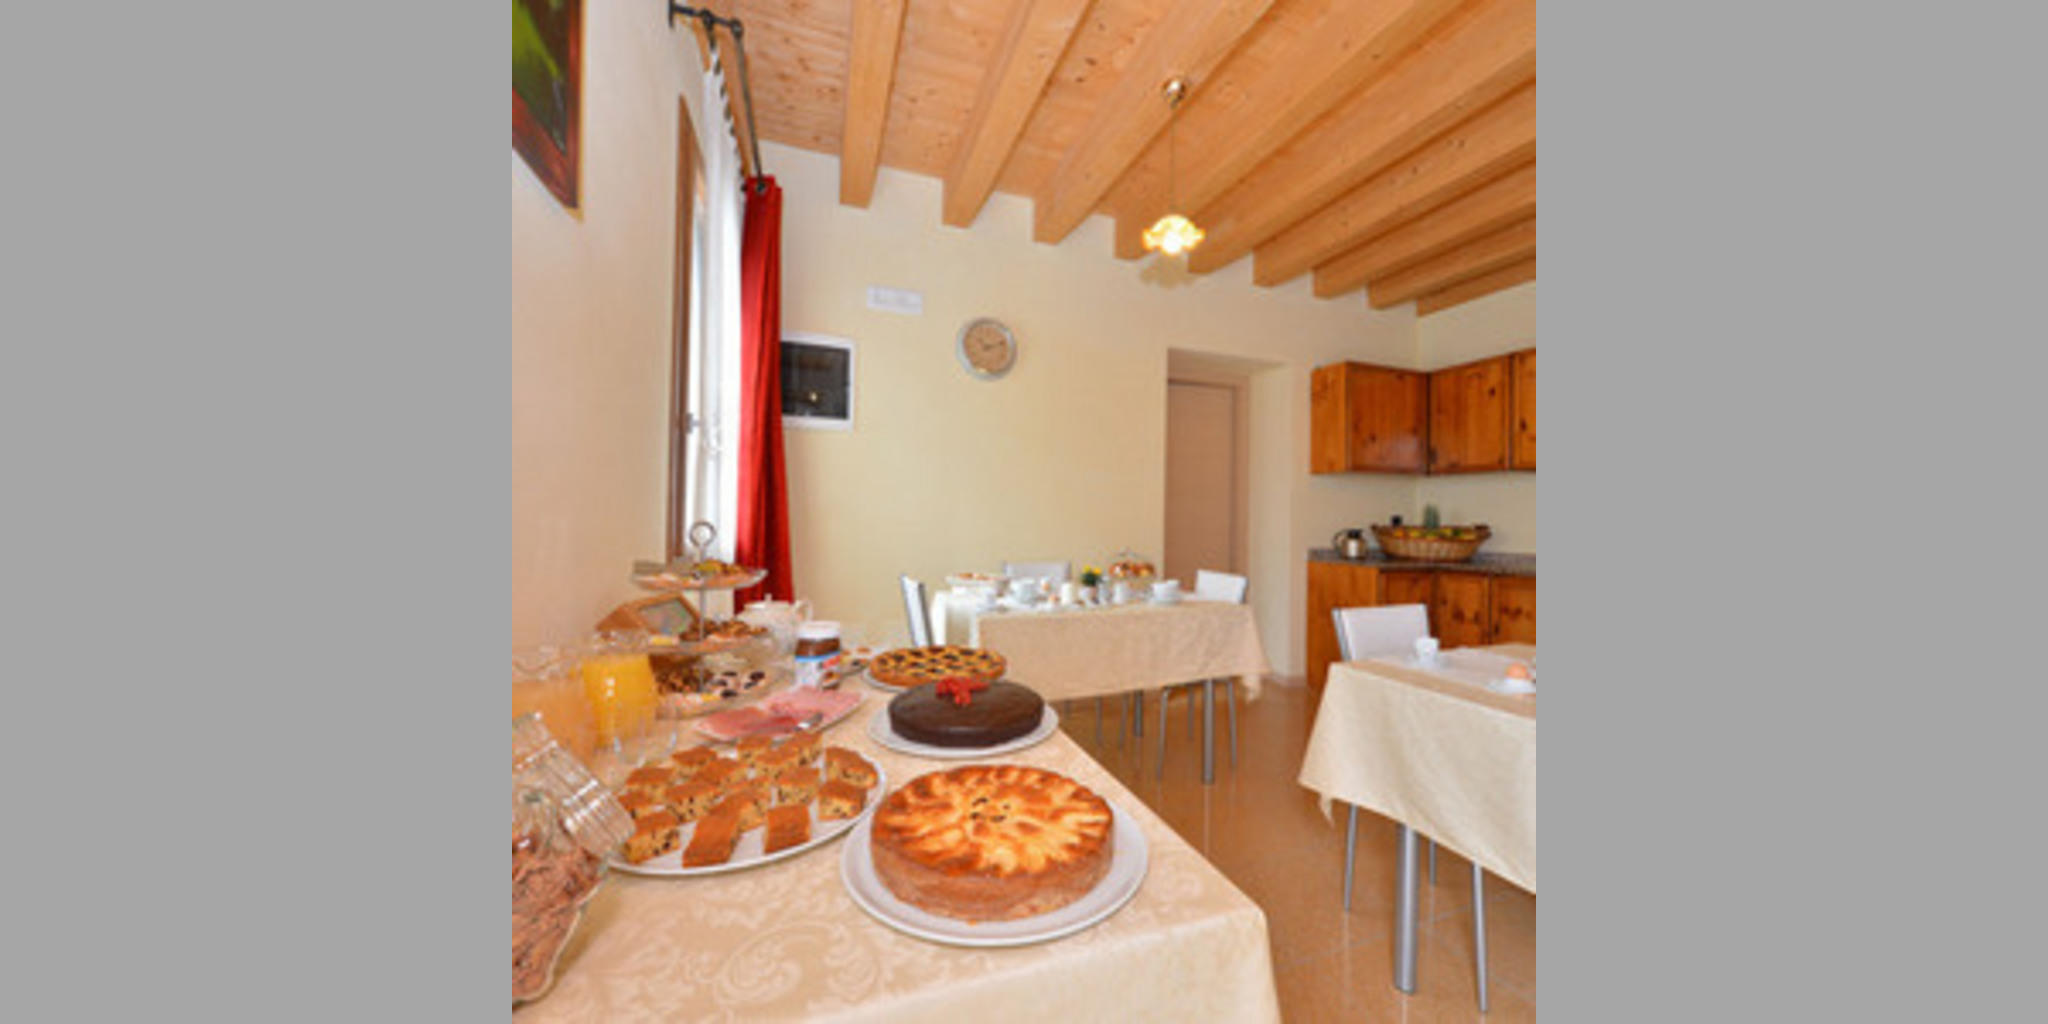 Bed & Breakfast Arcole - Moderno Ad Arcole